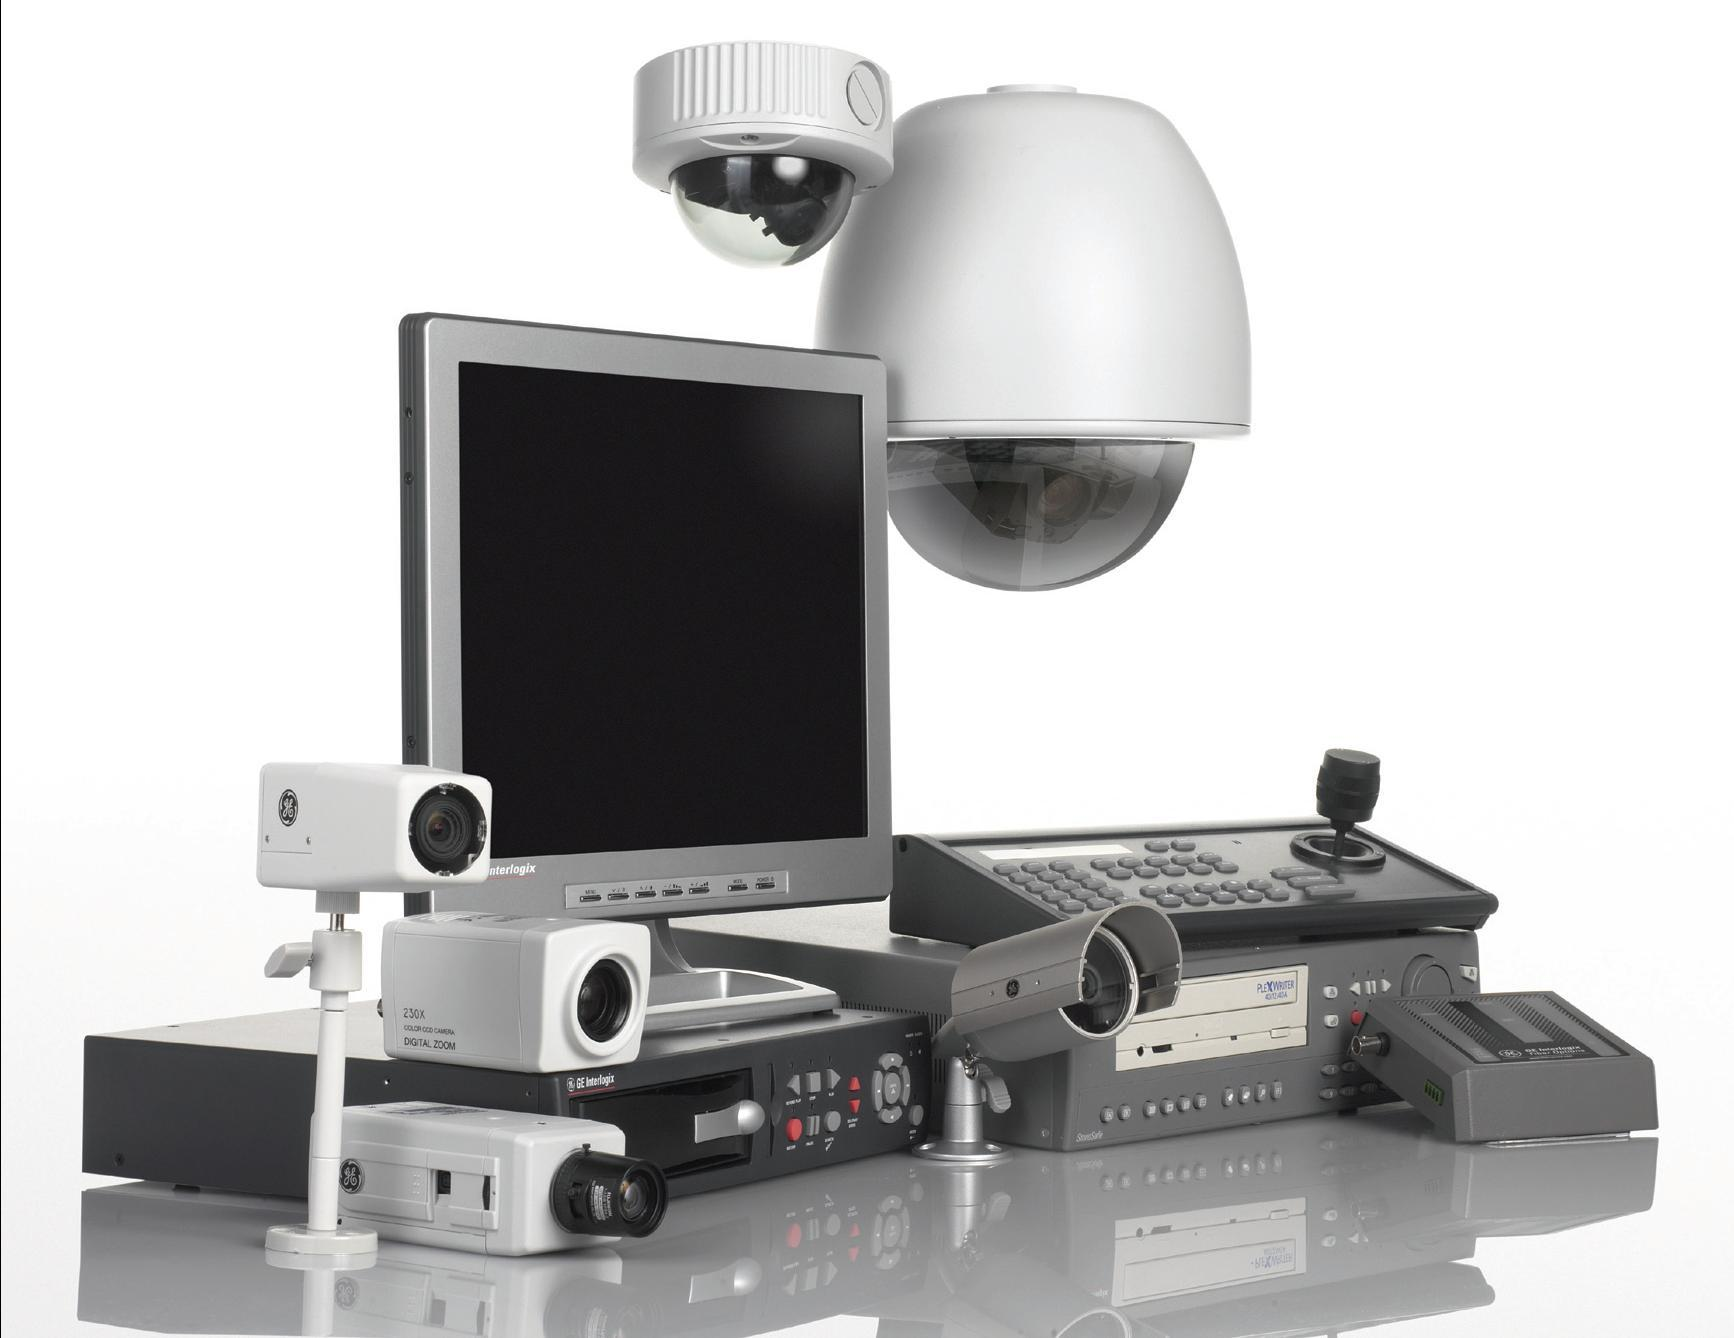 Best hidden surveillance systems to install in your new south florida home techpro security - Exterior surveillance cameras for home ...